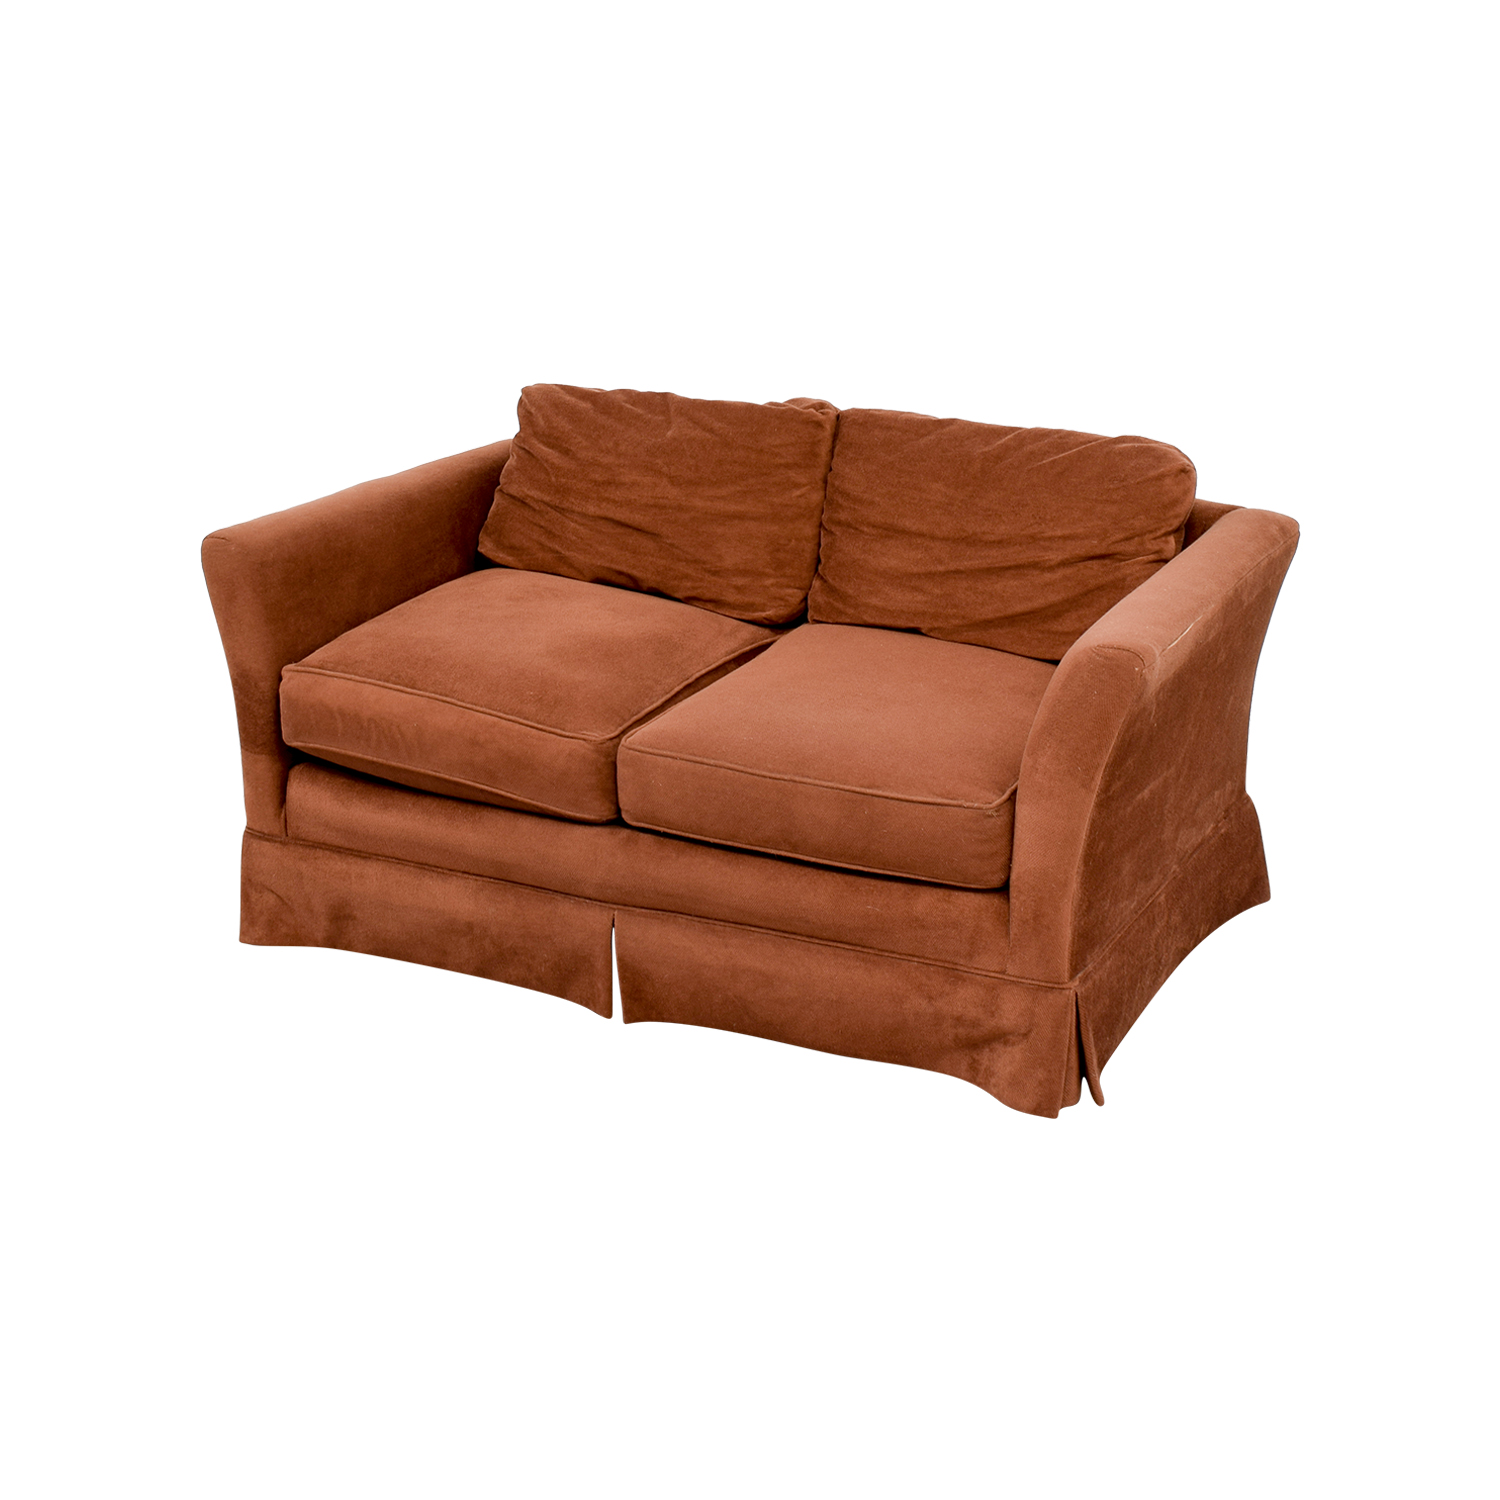 valerie p htm size full istikbal by the click clack bed product loveseat convertible small sofa